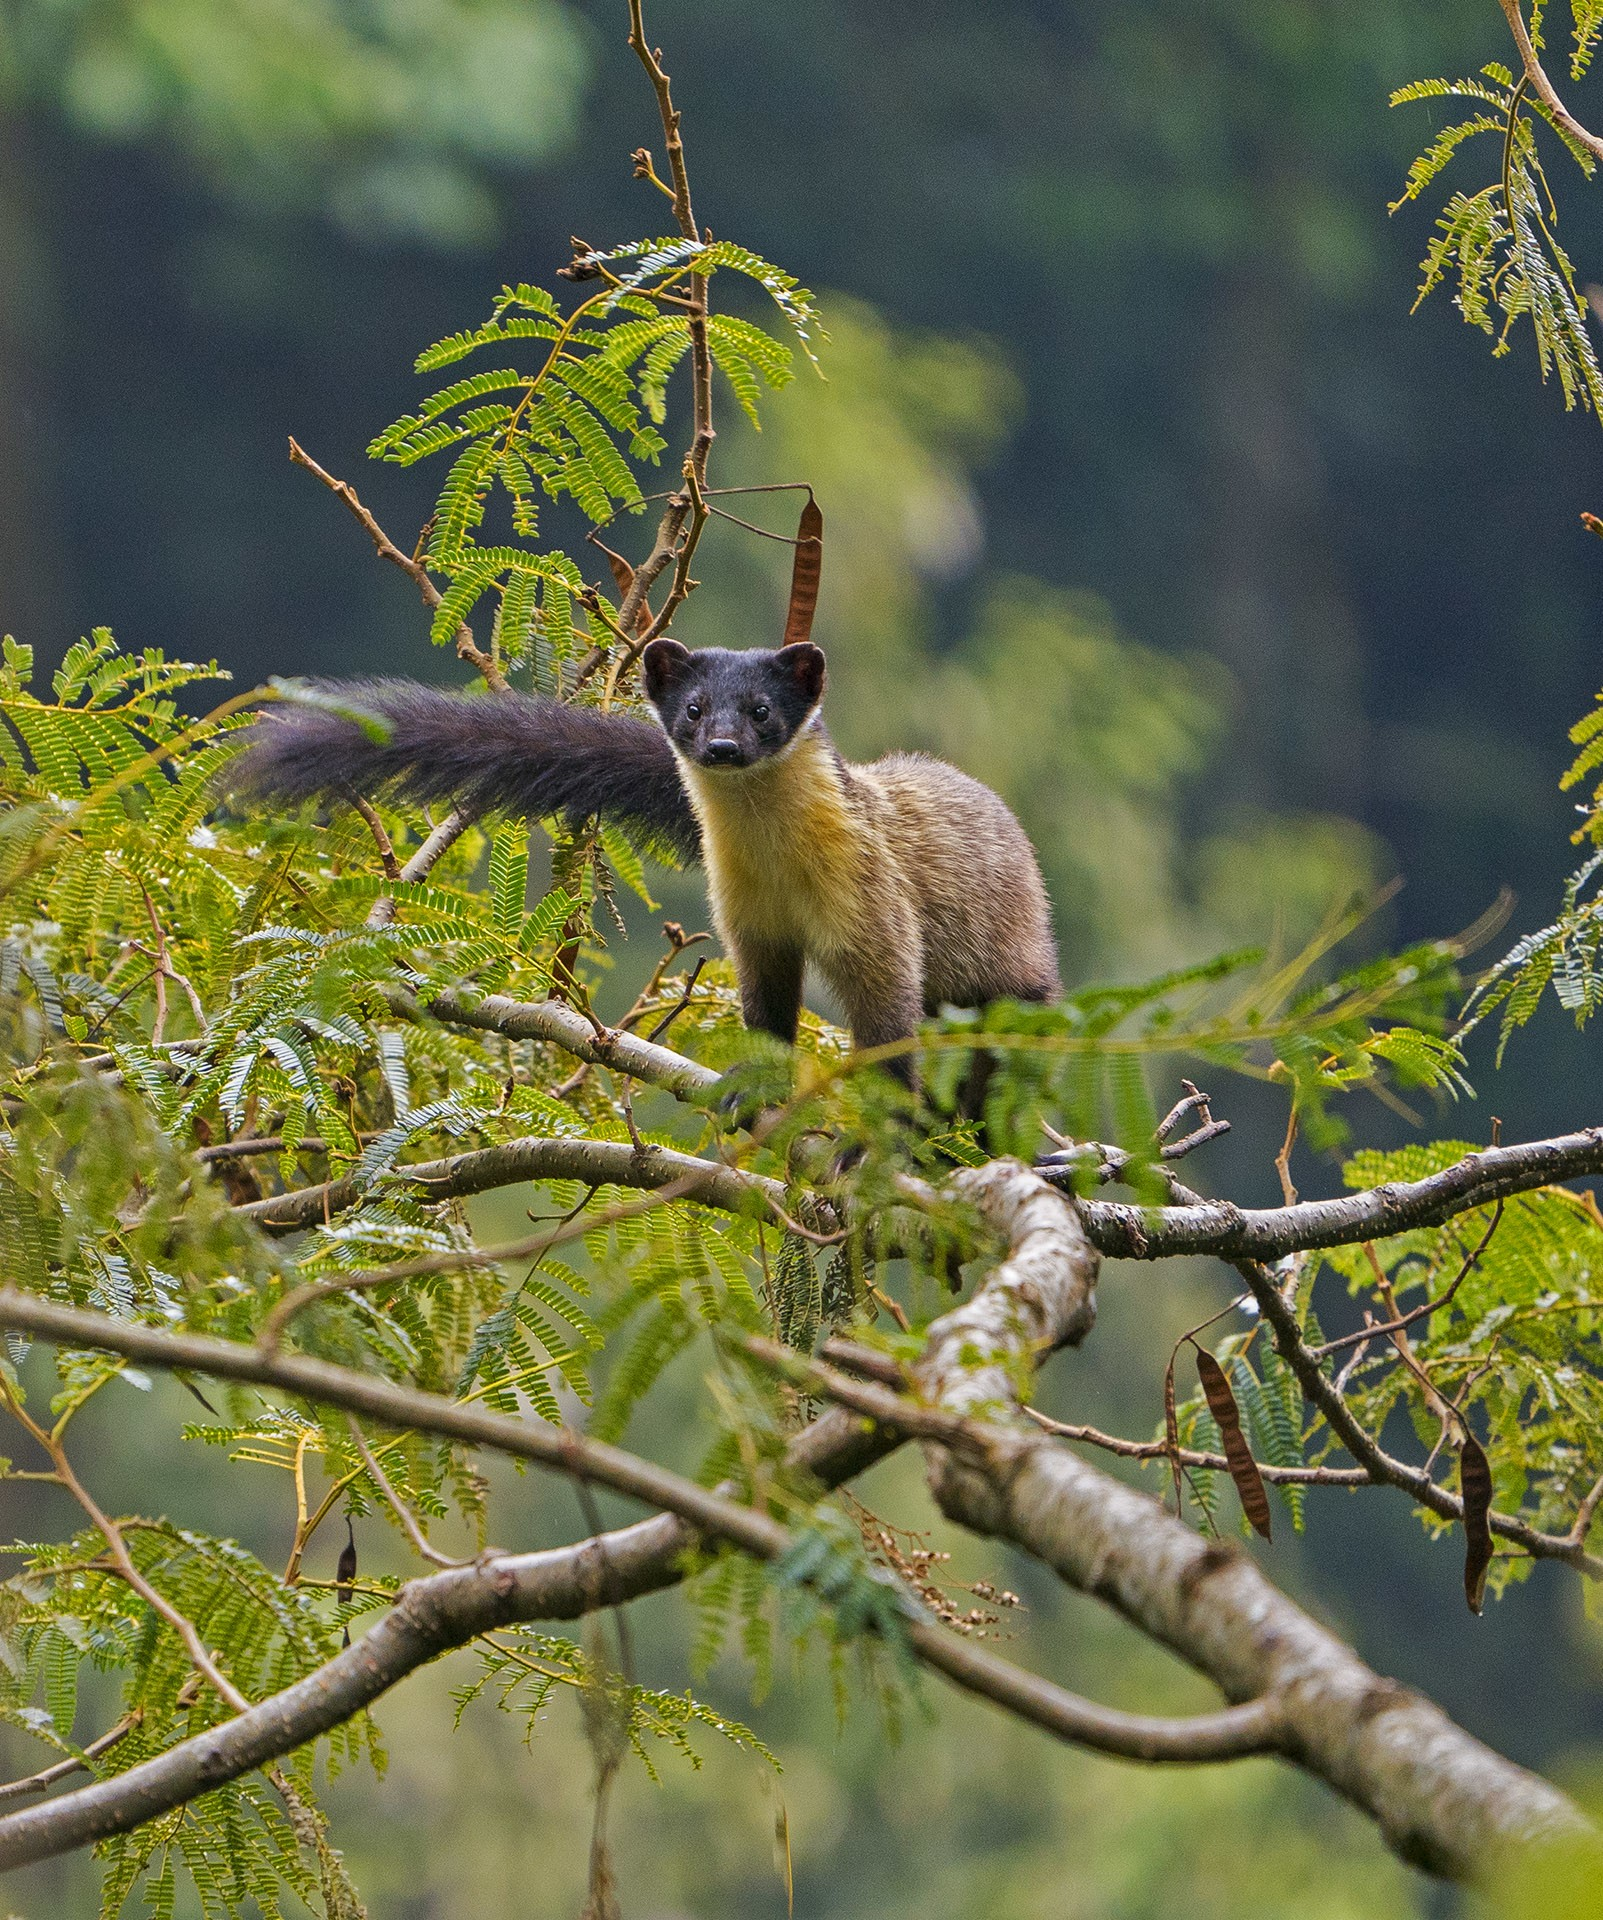 Equally at ease in trees and on the ground, this yellow-throated marten enjoys the view from a treetop in Dibang Valley, Arunachal Pradesh. Photo: Dhritiman Mukherjee  Cover photo: The yellow-throated marten has a long tail which extends to almost two-thirds the length of its body. It has short, powerful legs with broad feet allowing it to scamper up trees with ease. Photo: Dhritiman Mukherjee